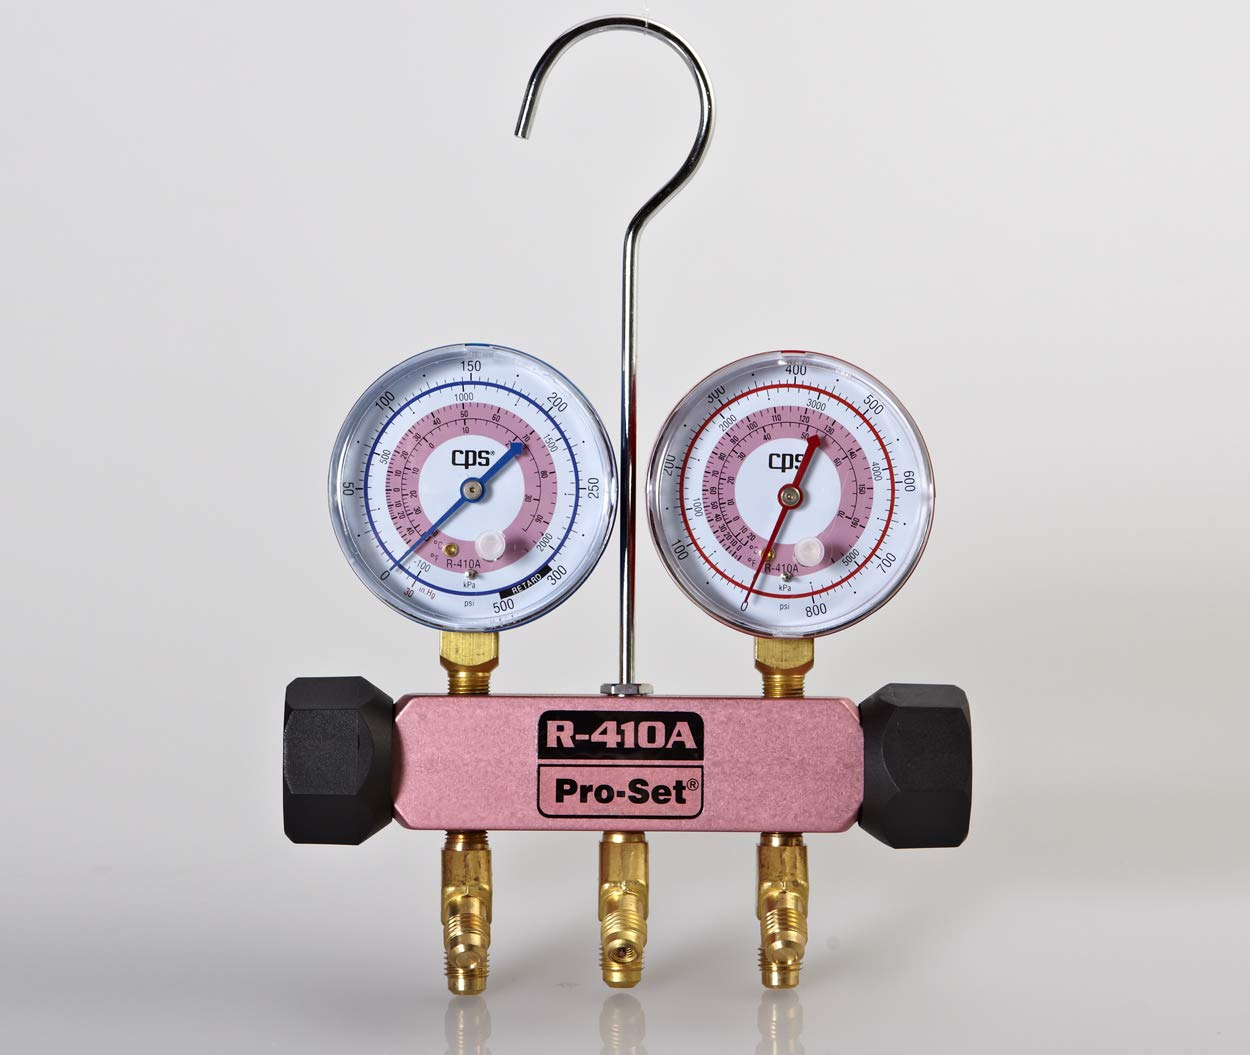 CPS MEB Piston Series 2 Valve Manifold - Pink Body, Without Hoses